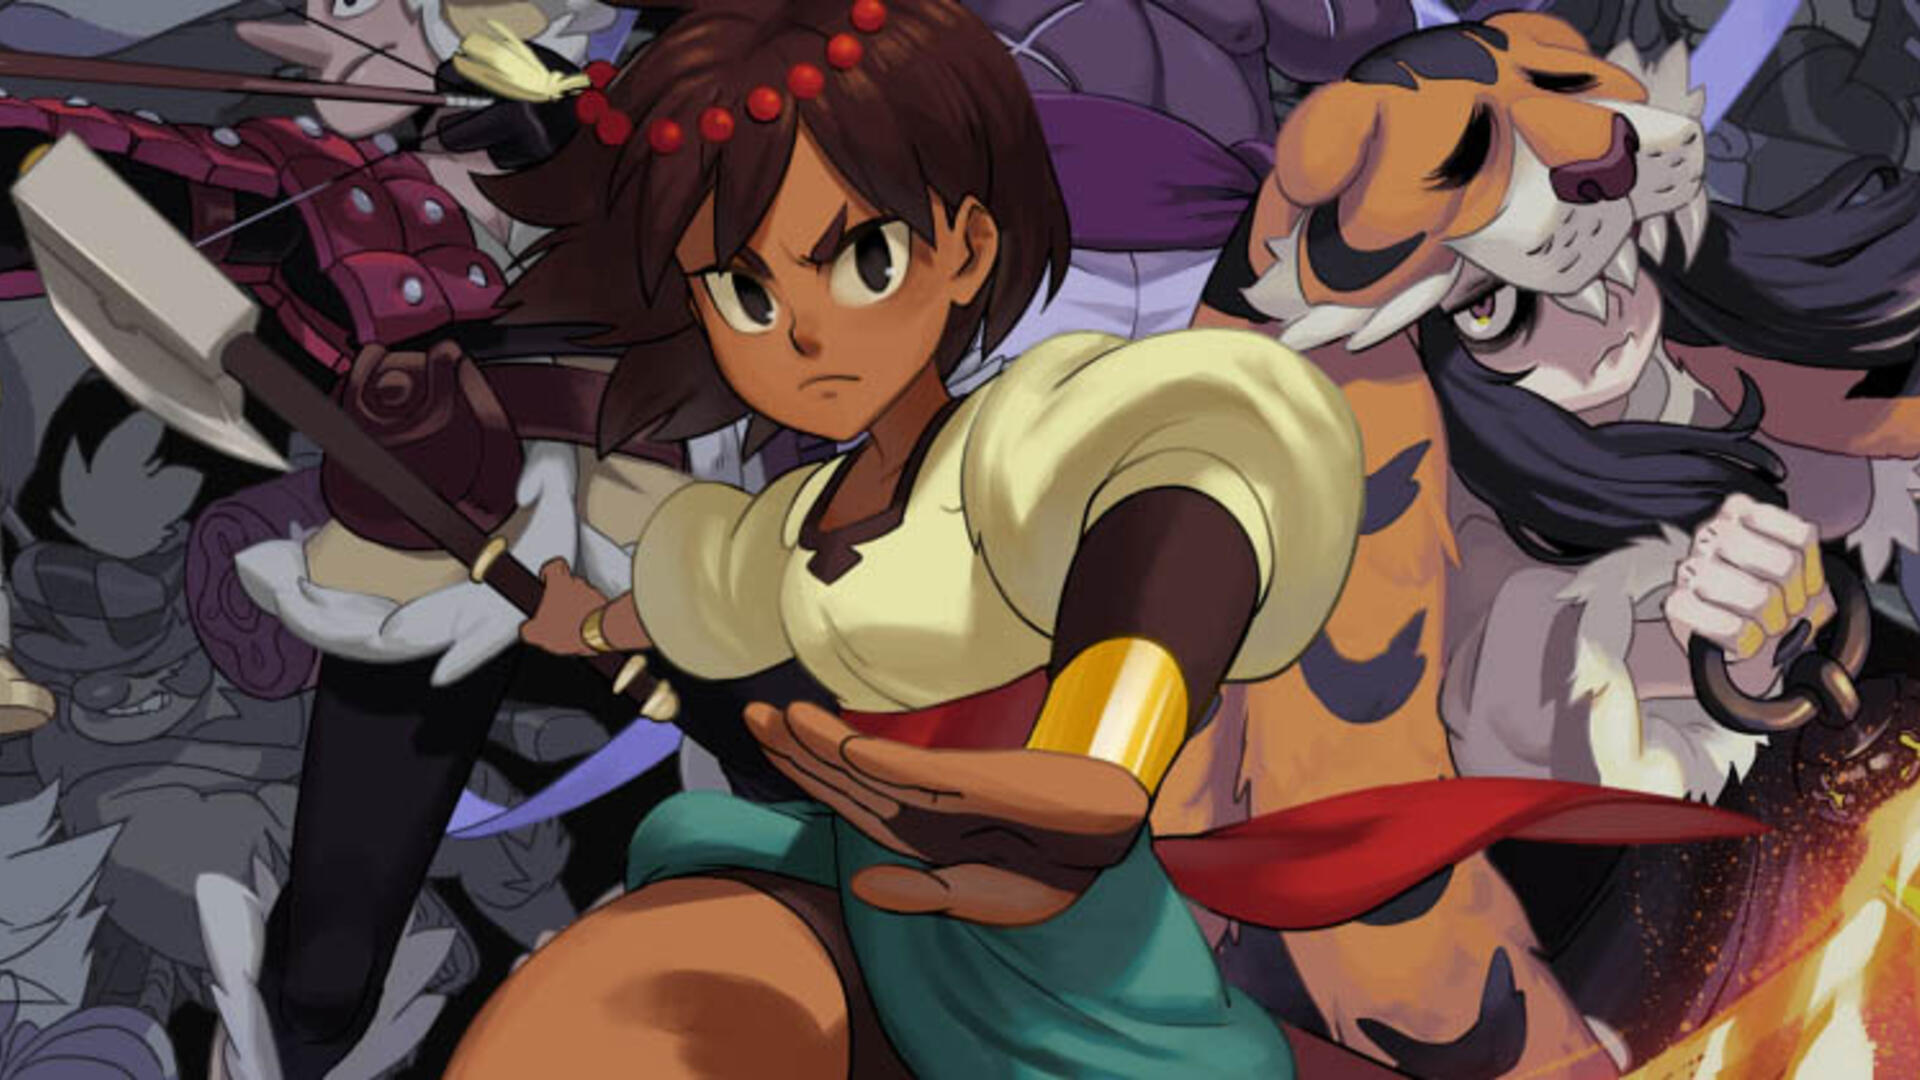 Lab Zero's Campaign for Action RPG Indivisible Gains Momentum